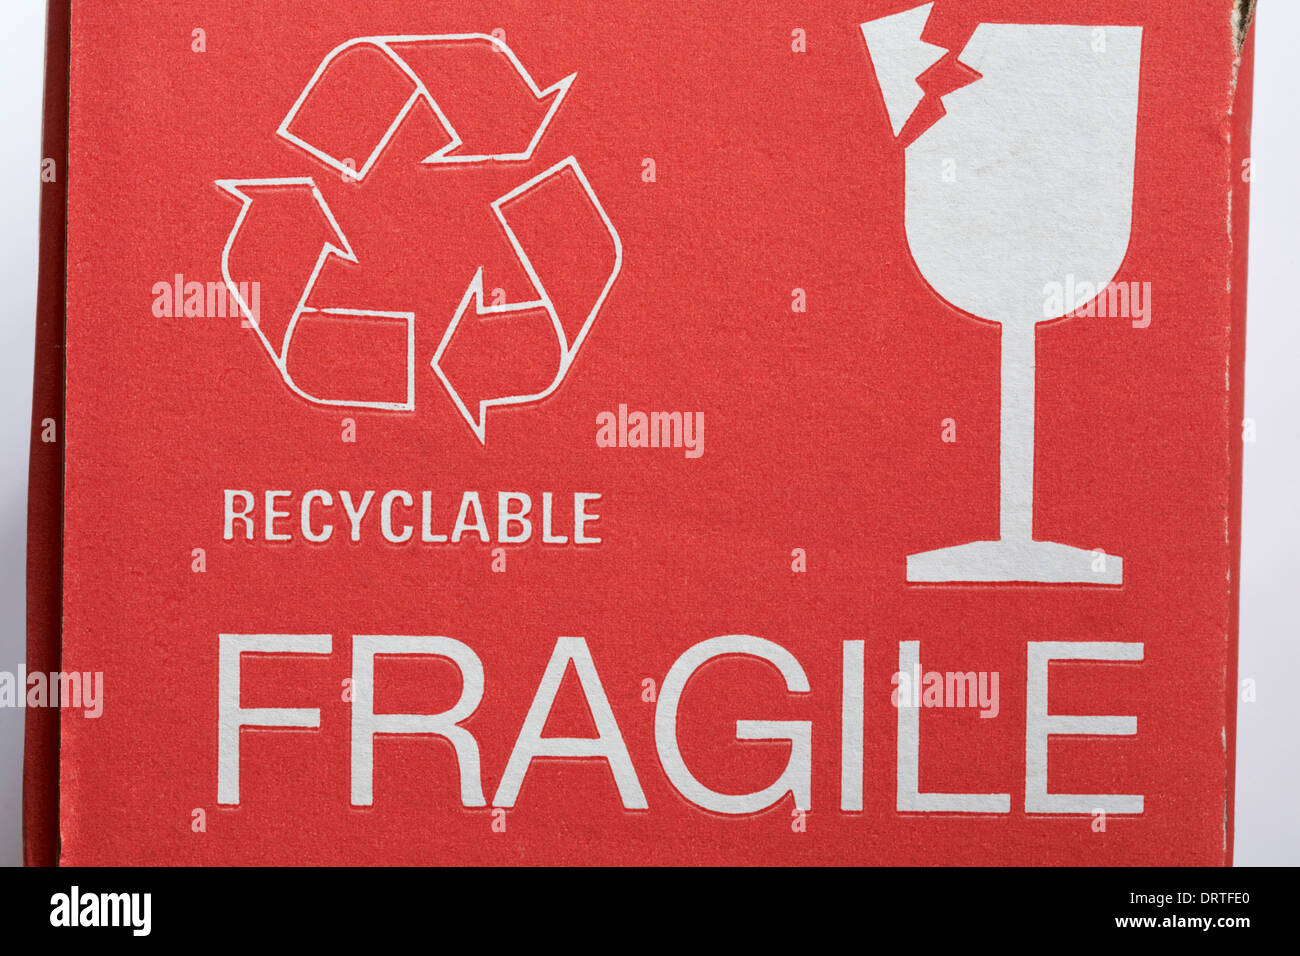 recyclable logo and fragile glass information on cardboard box - Stock Image